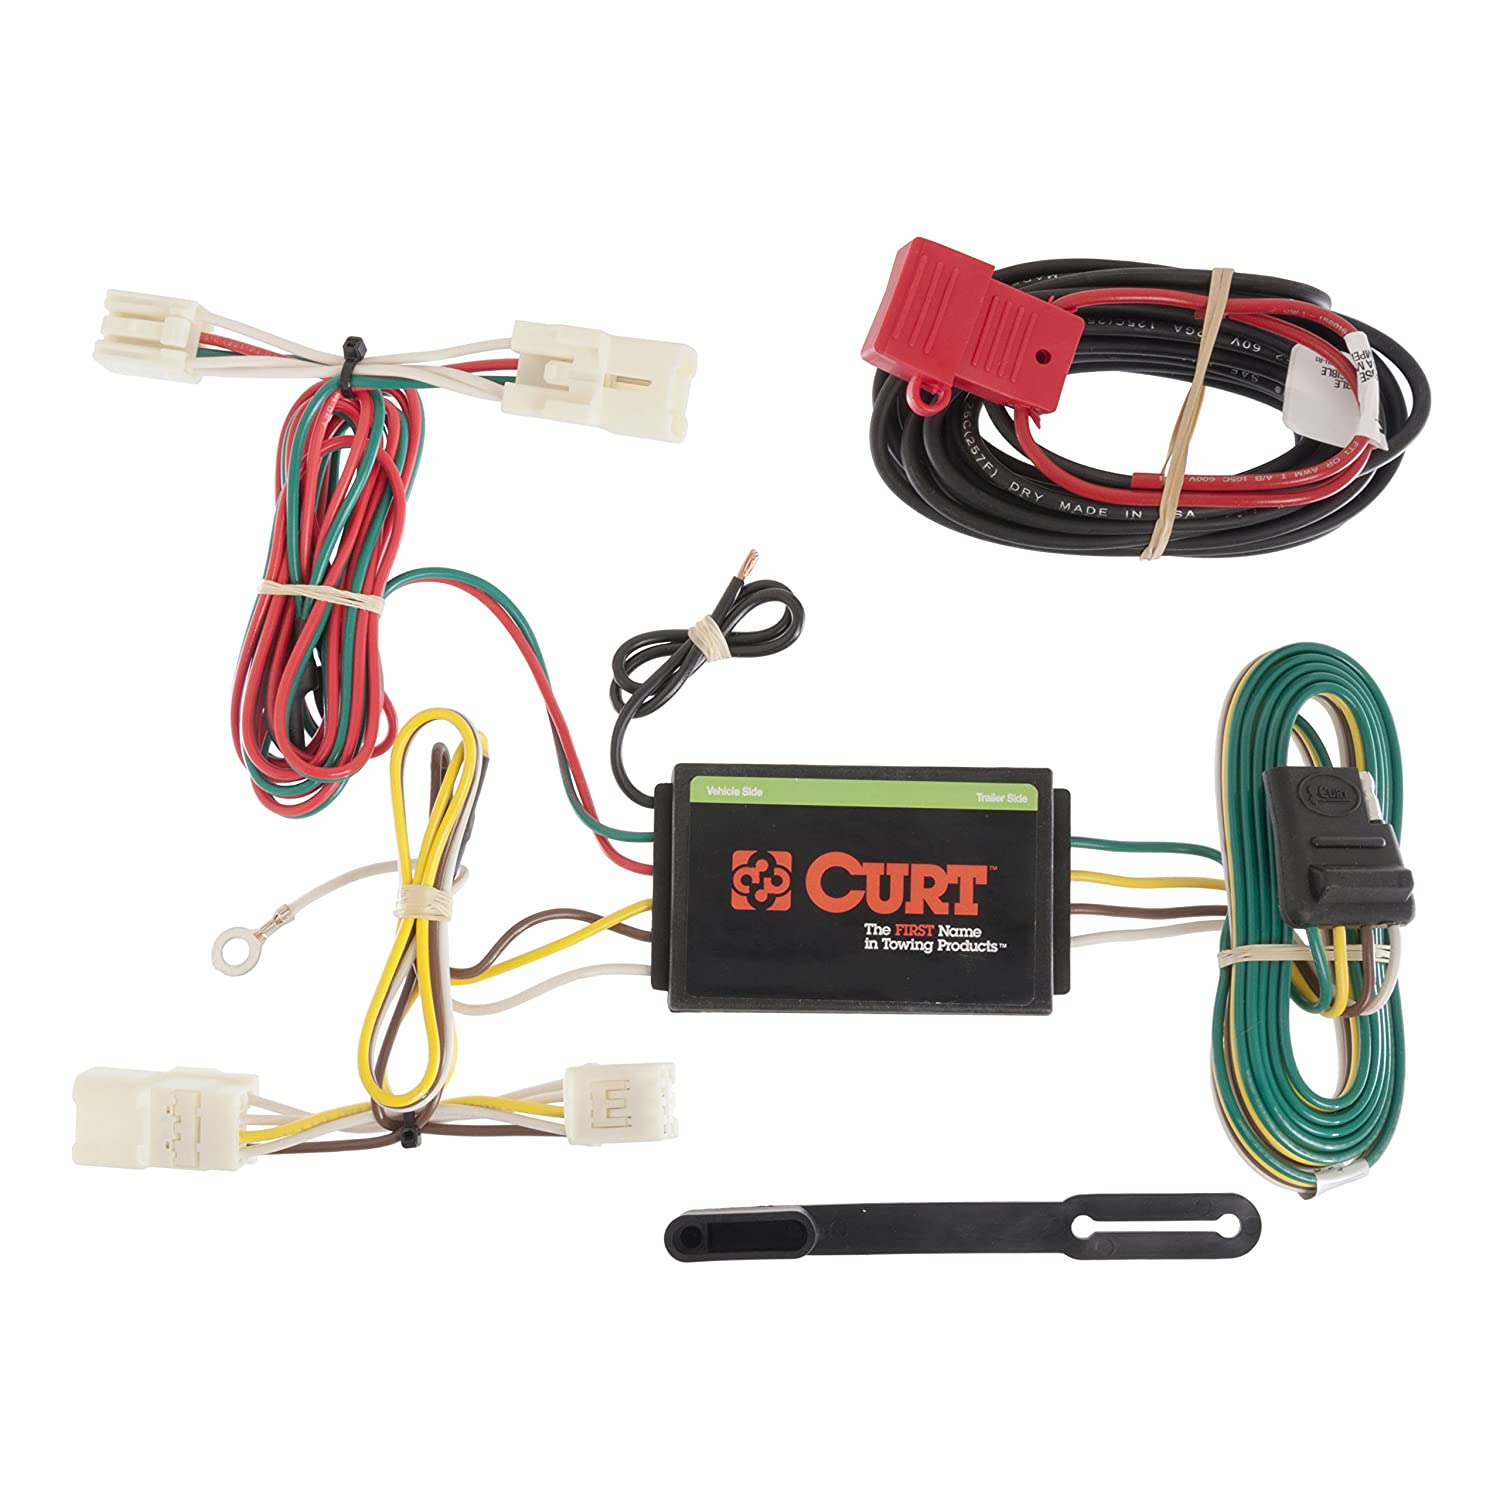 817l7jcQOtL._SL1500_ amazon com curt 56165 custom wiring harness automotive automotive wiring harness at panicattacktreatment.co